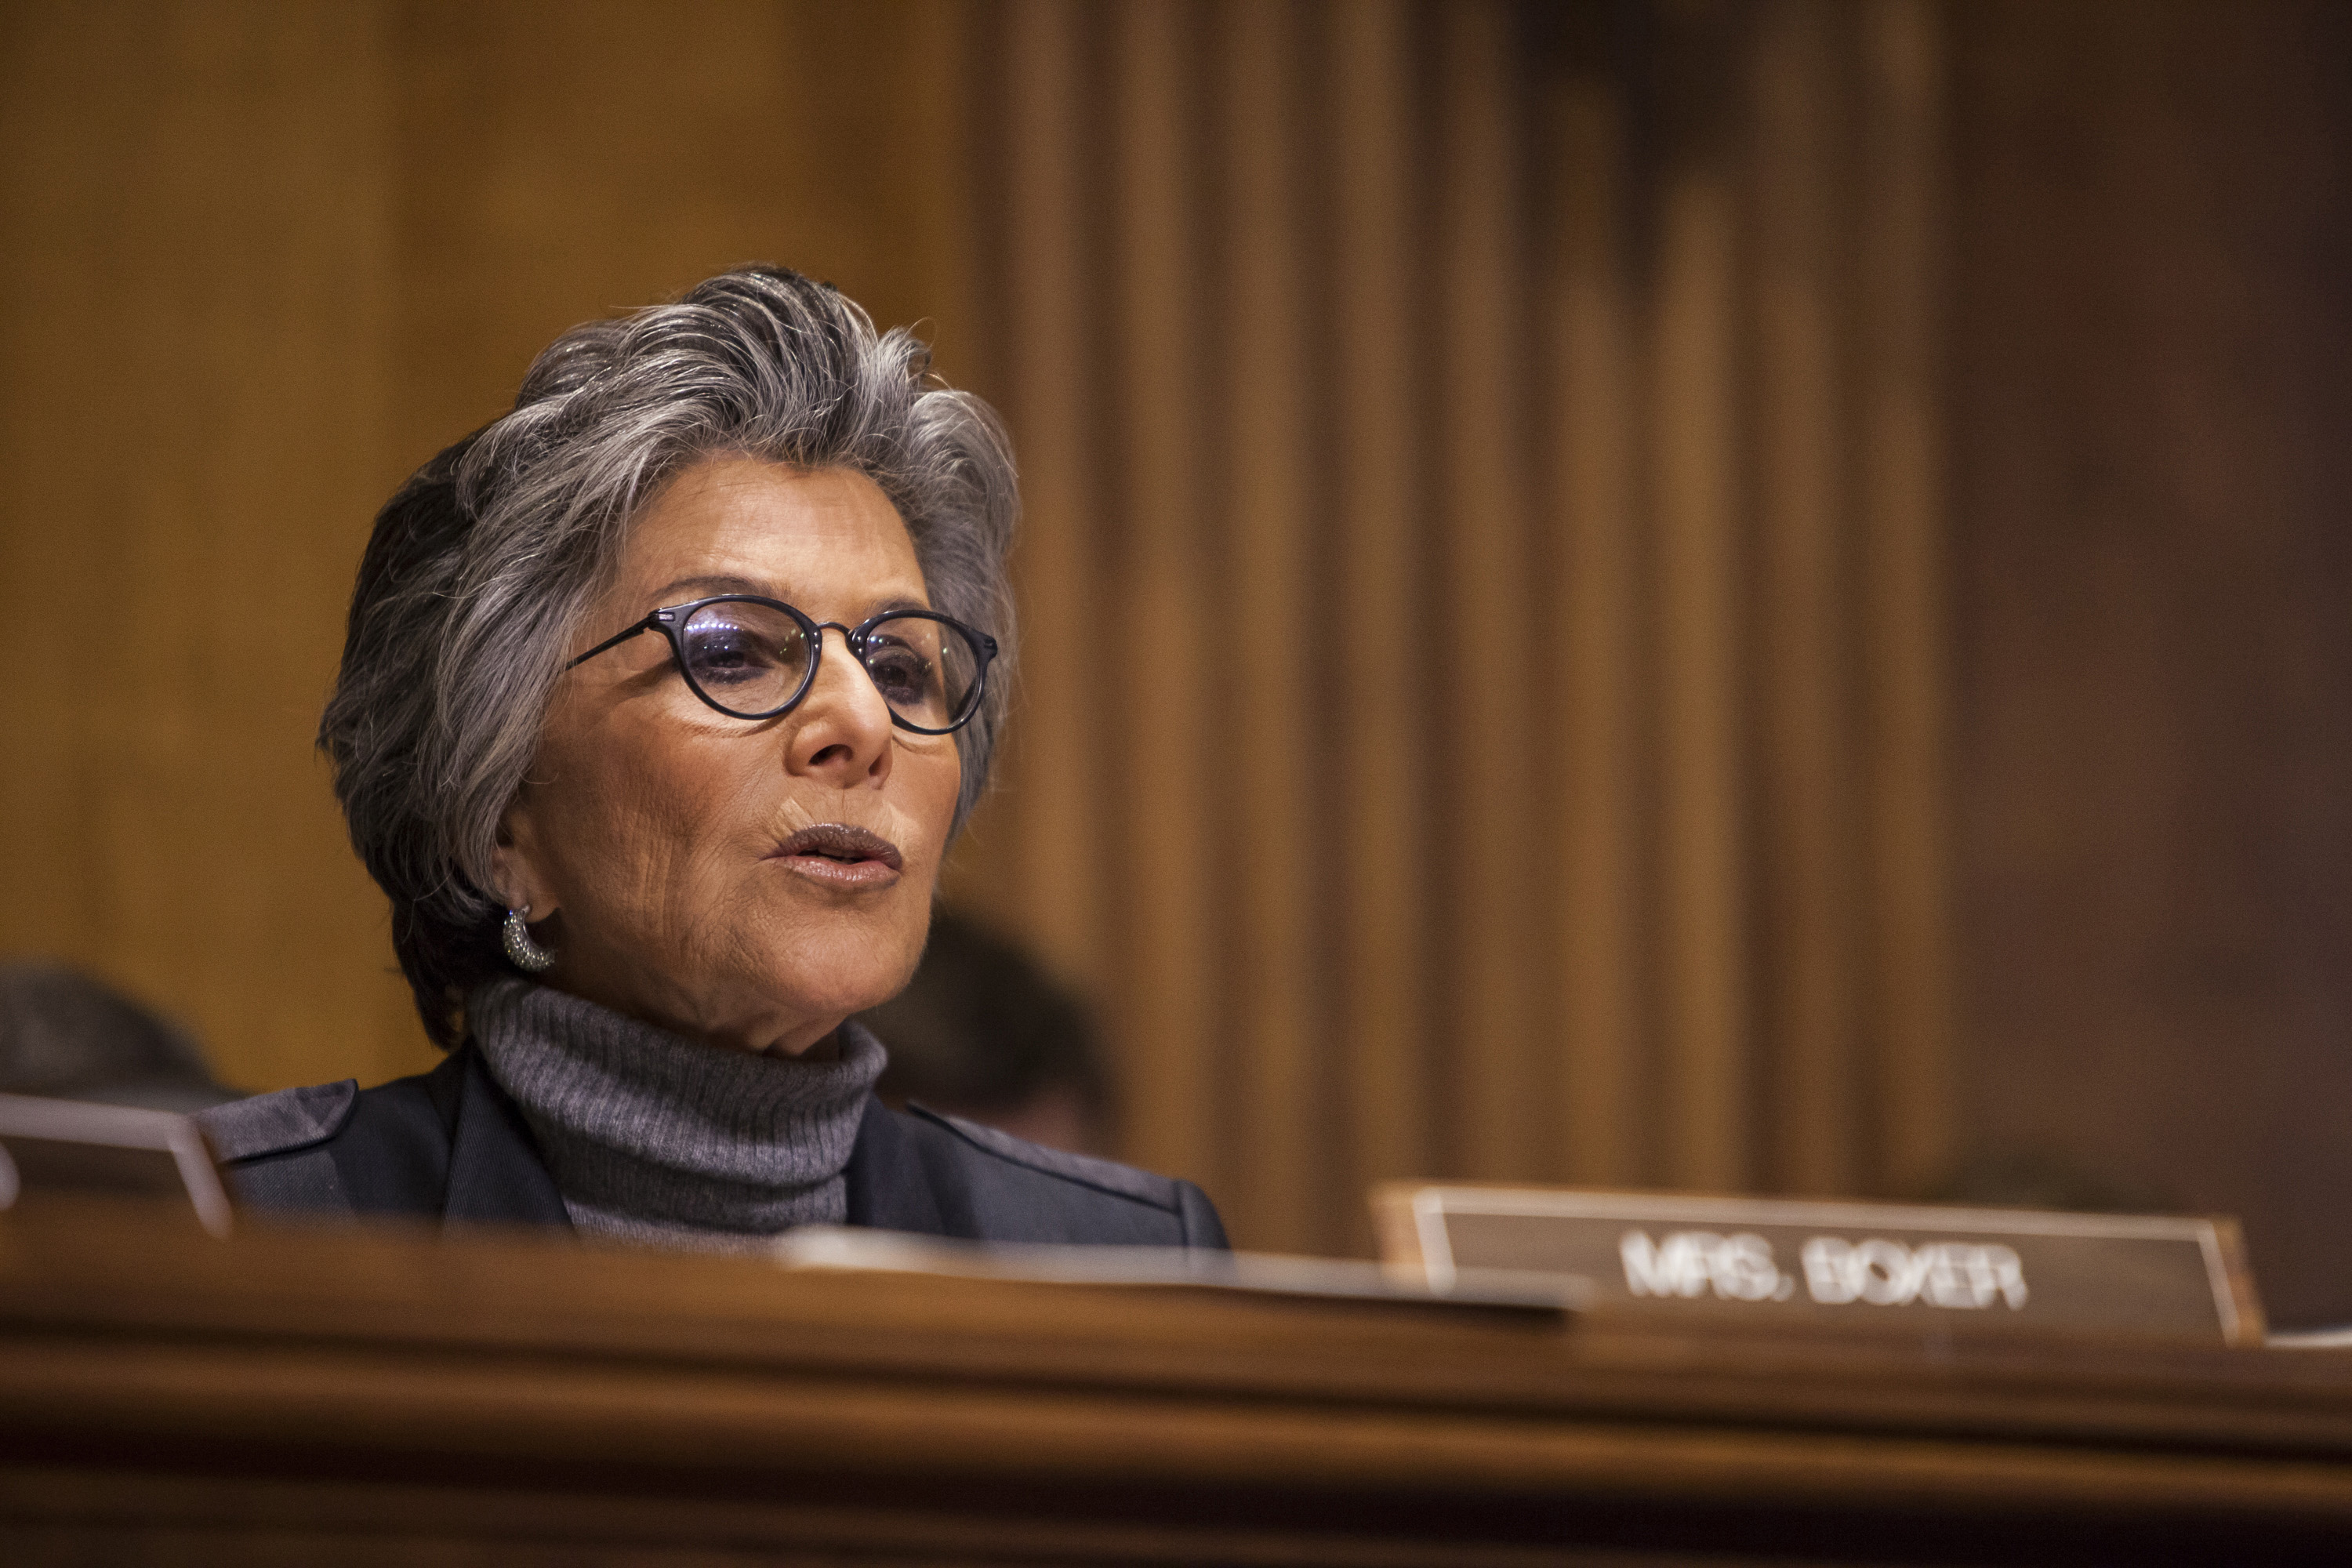 Senator Barbara Boxer speaks during a Senate Foreign Relations committee hearing on U.S. and Cuban relations in Washington on Feb.3, 2015.